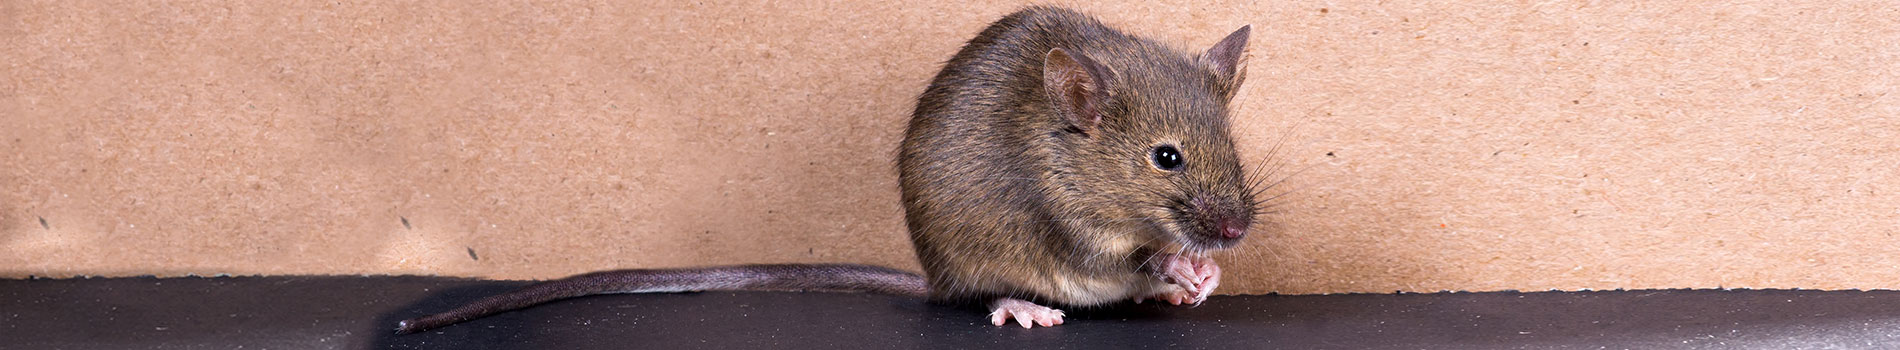 Image of a mouse. A common pest control species.